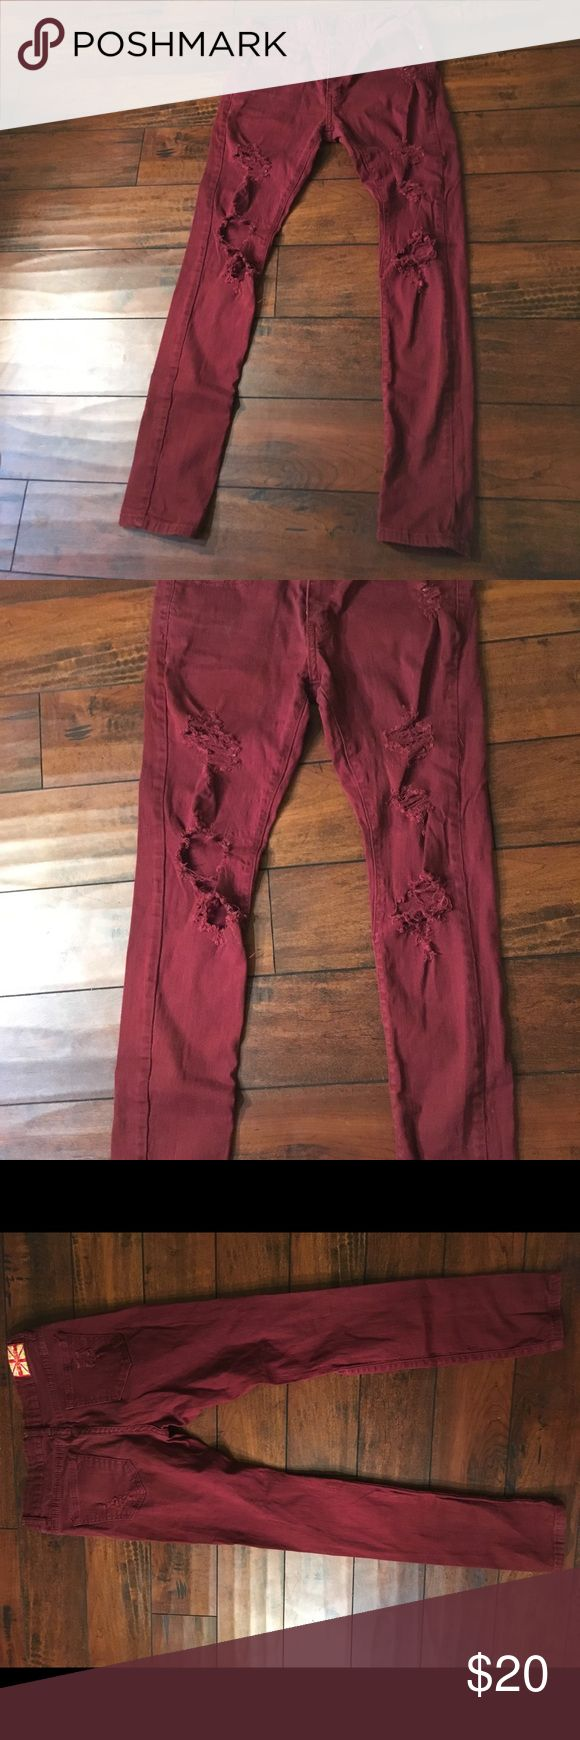 Distressed skinny jeans Super cute distressed maroon skinny jeans Used but great condition Jeans Skinny